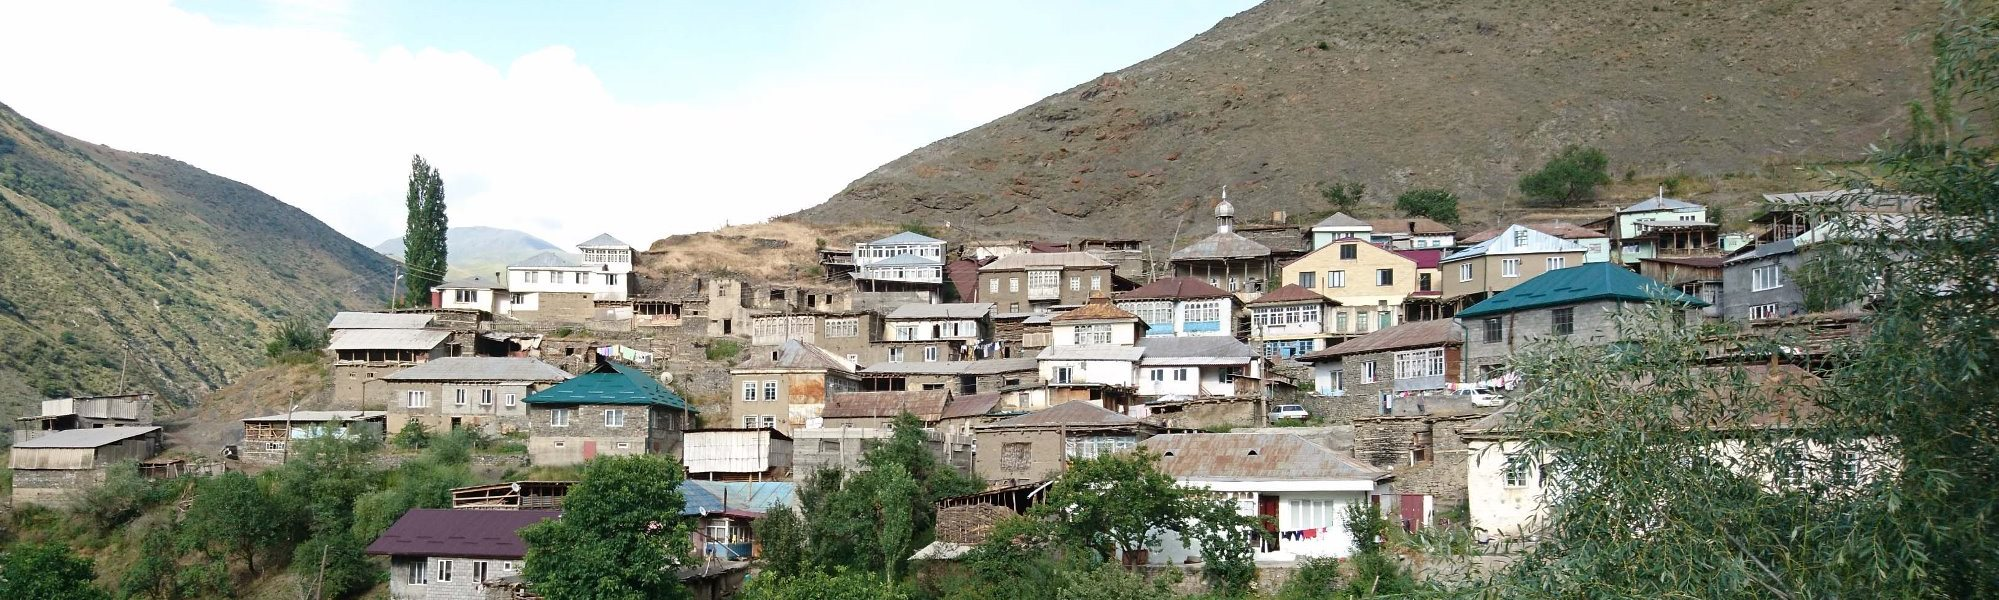 A look at the central part of the Kina village, Rutul-speaking area, Daghestan